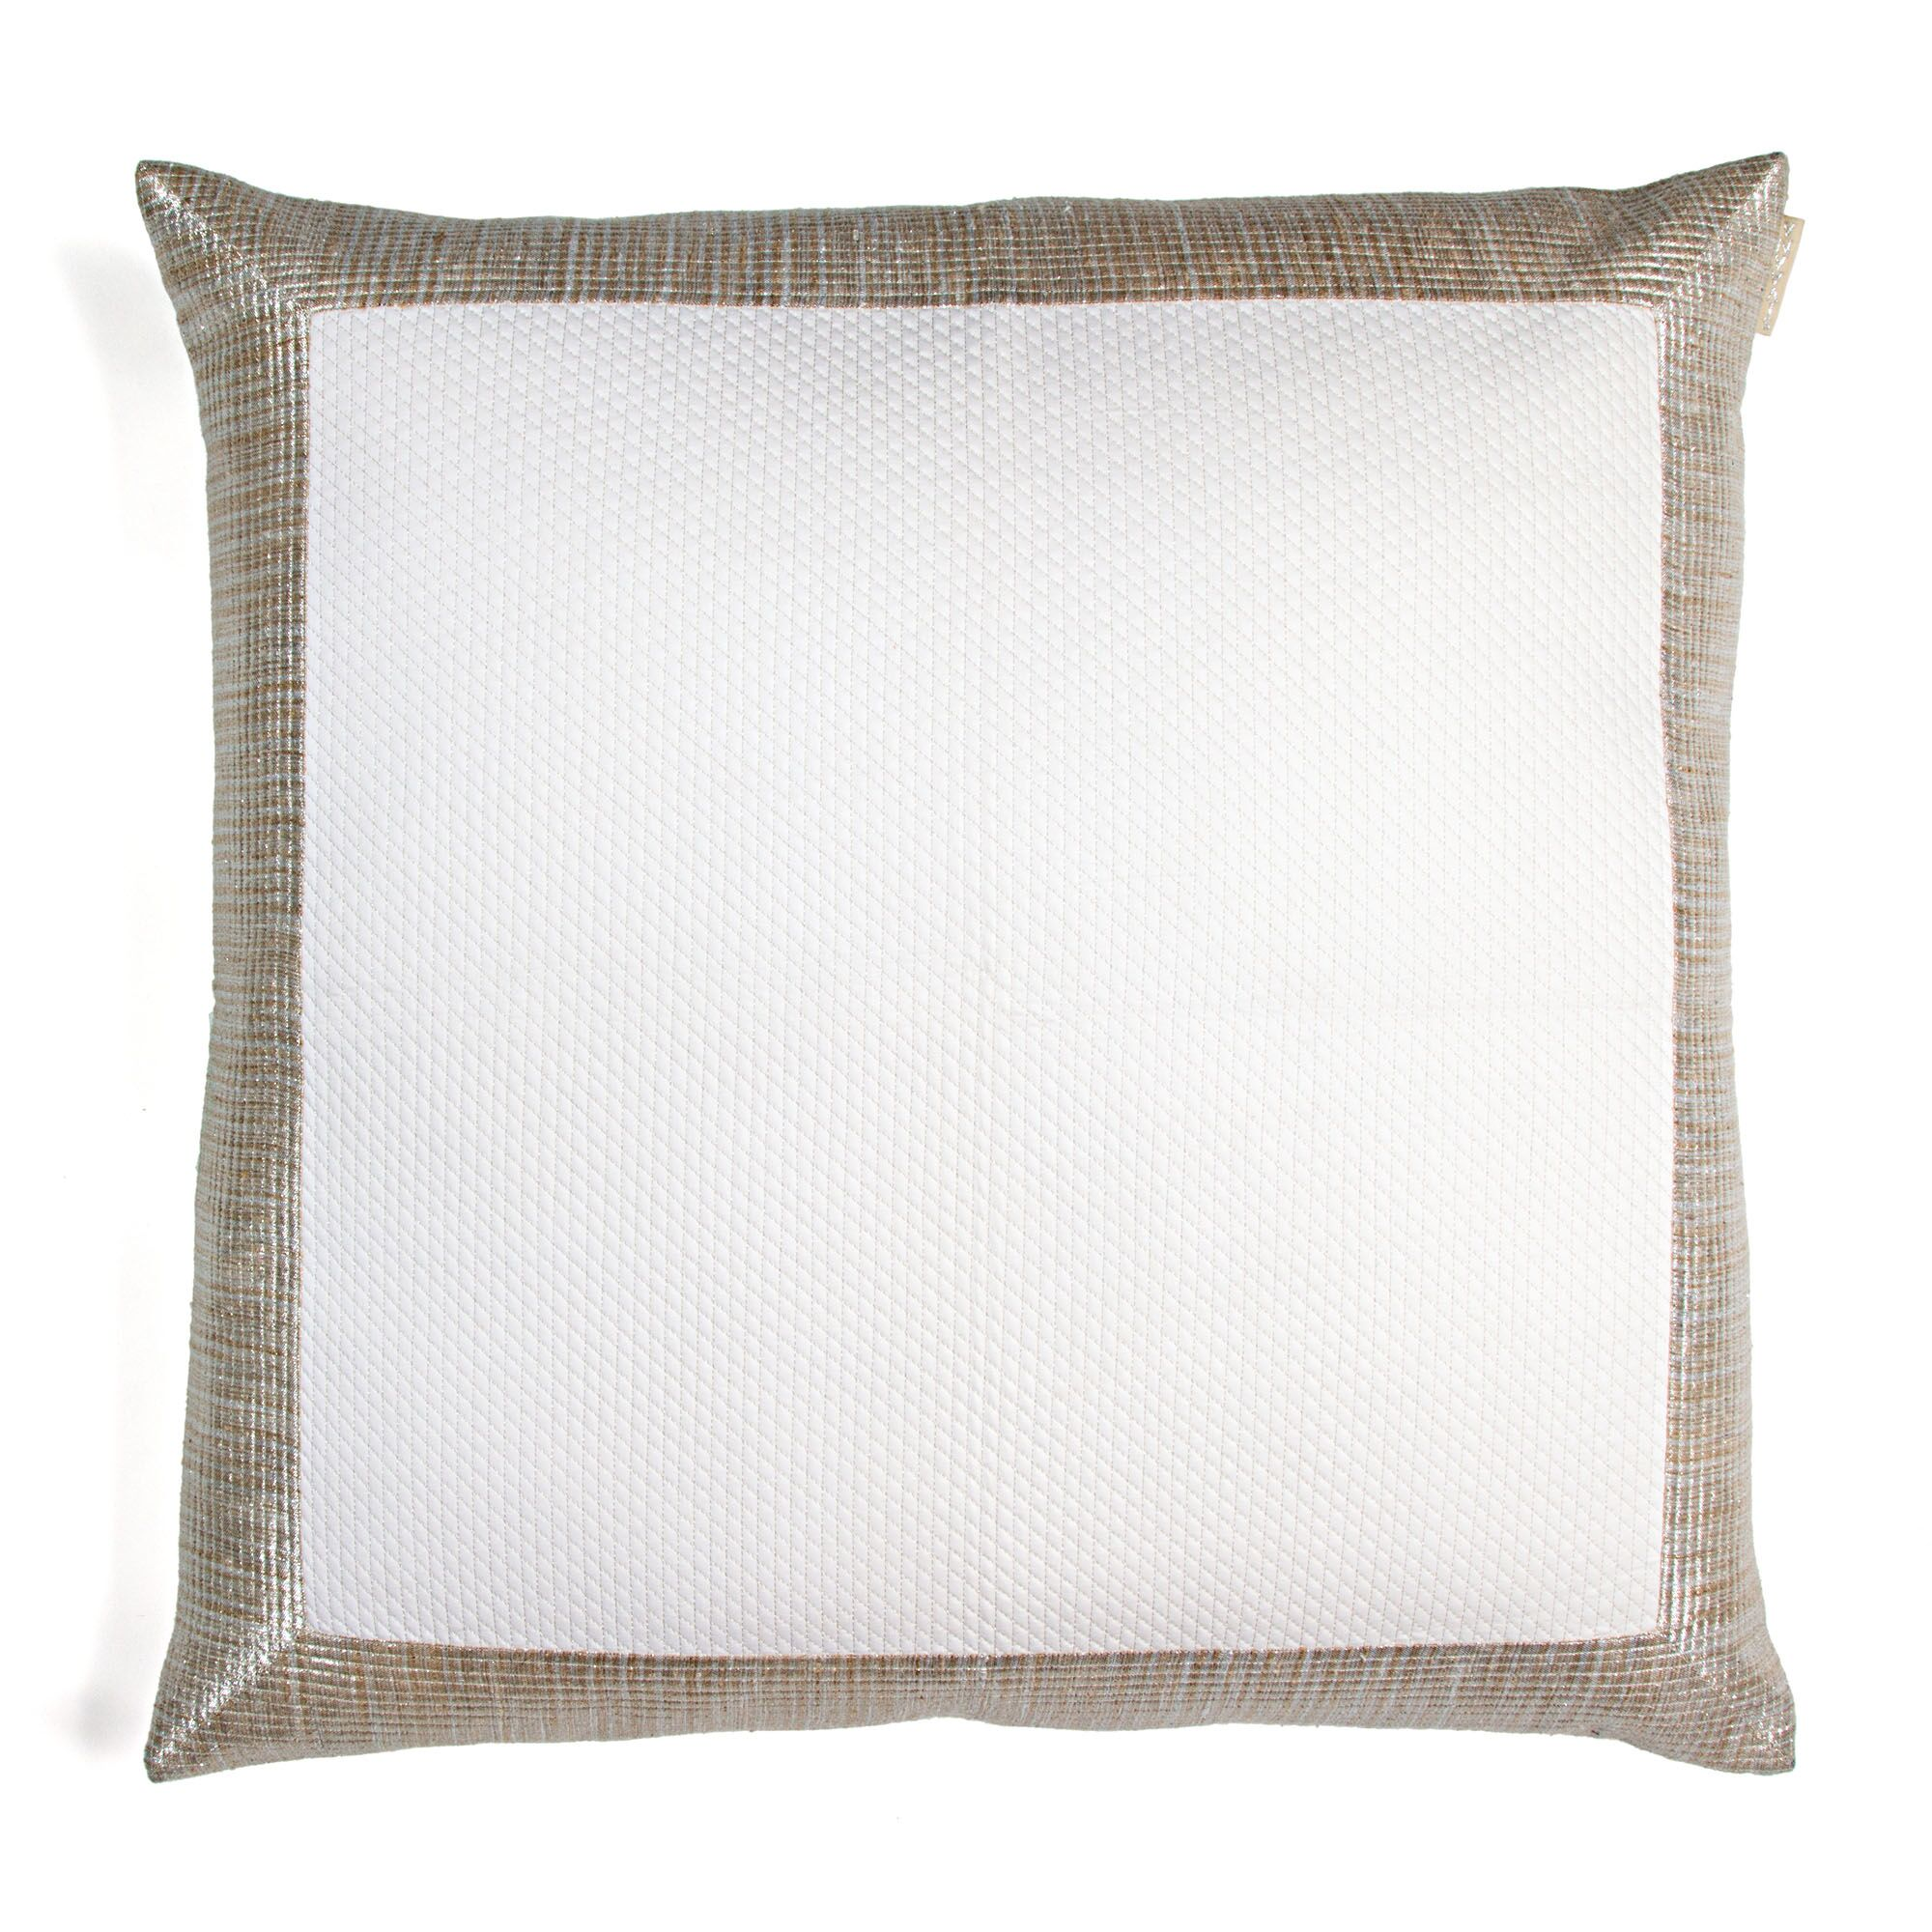 Haystack Border Cotton Throw Pillow